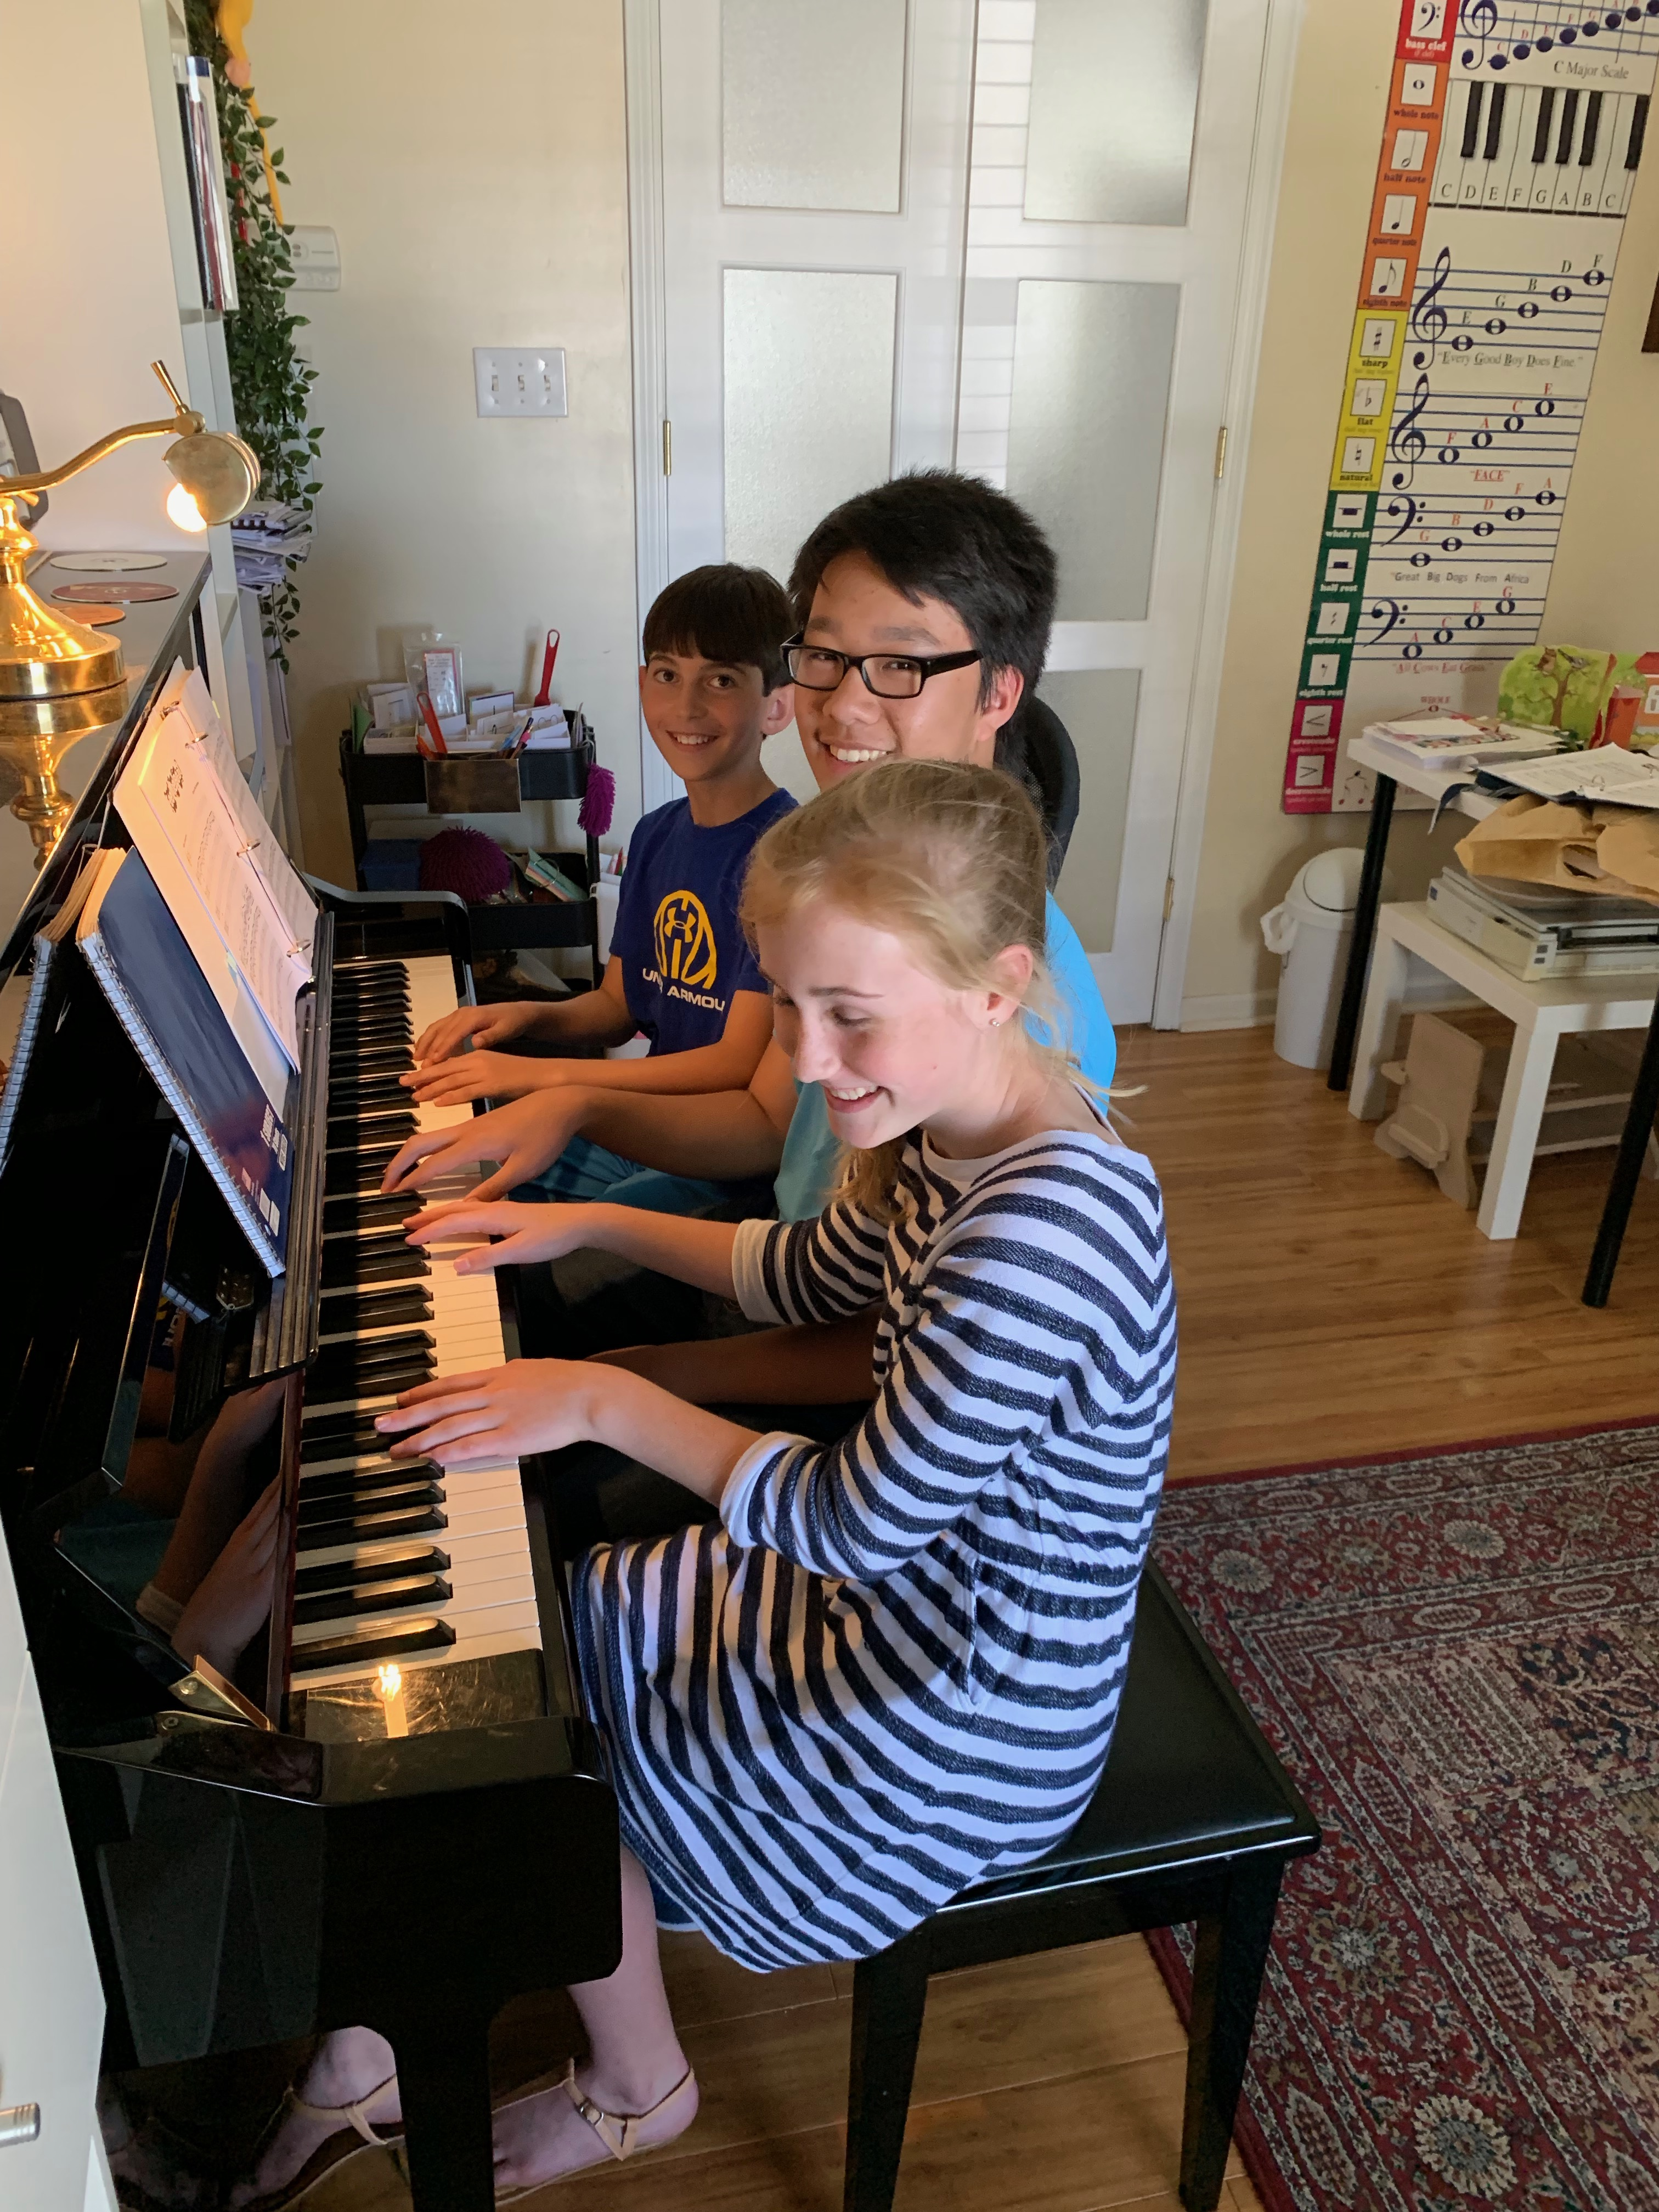 Iberia Music Academy • Music lessons for Piano, Guitar